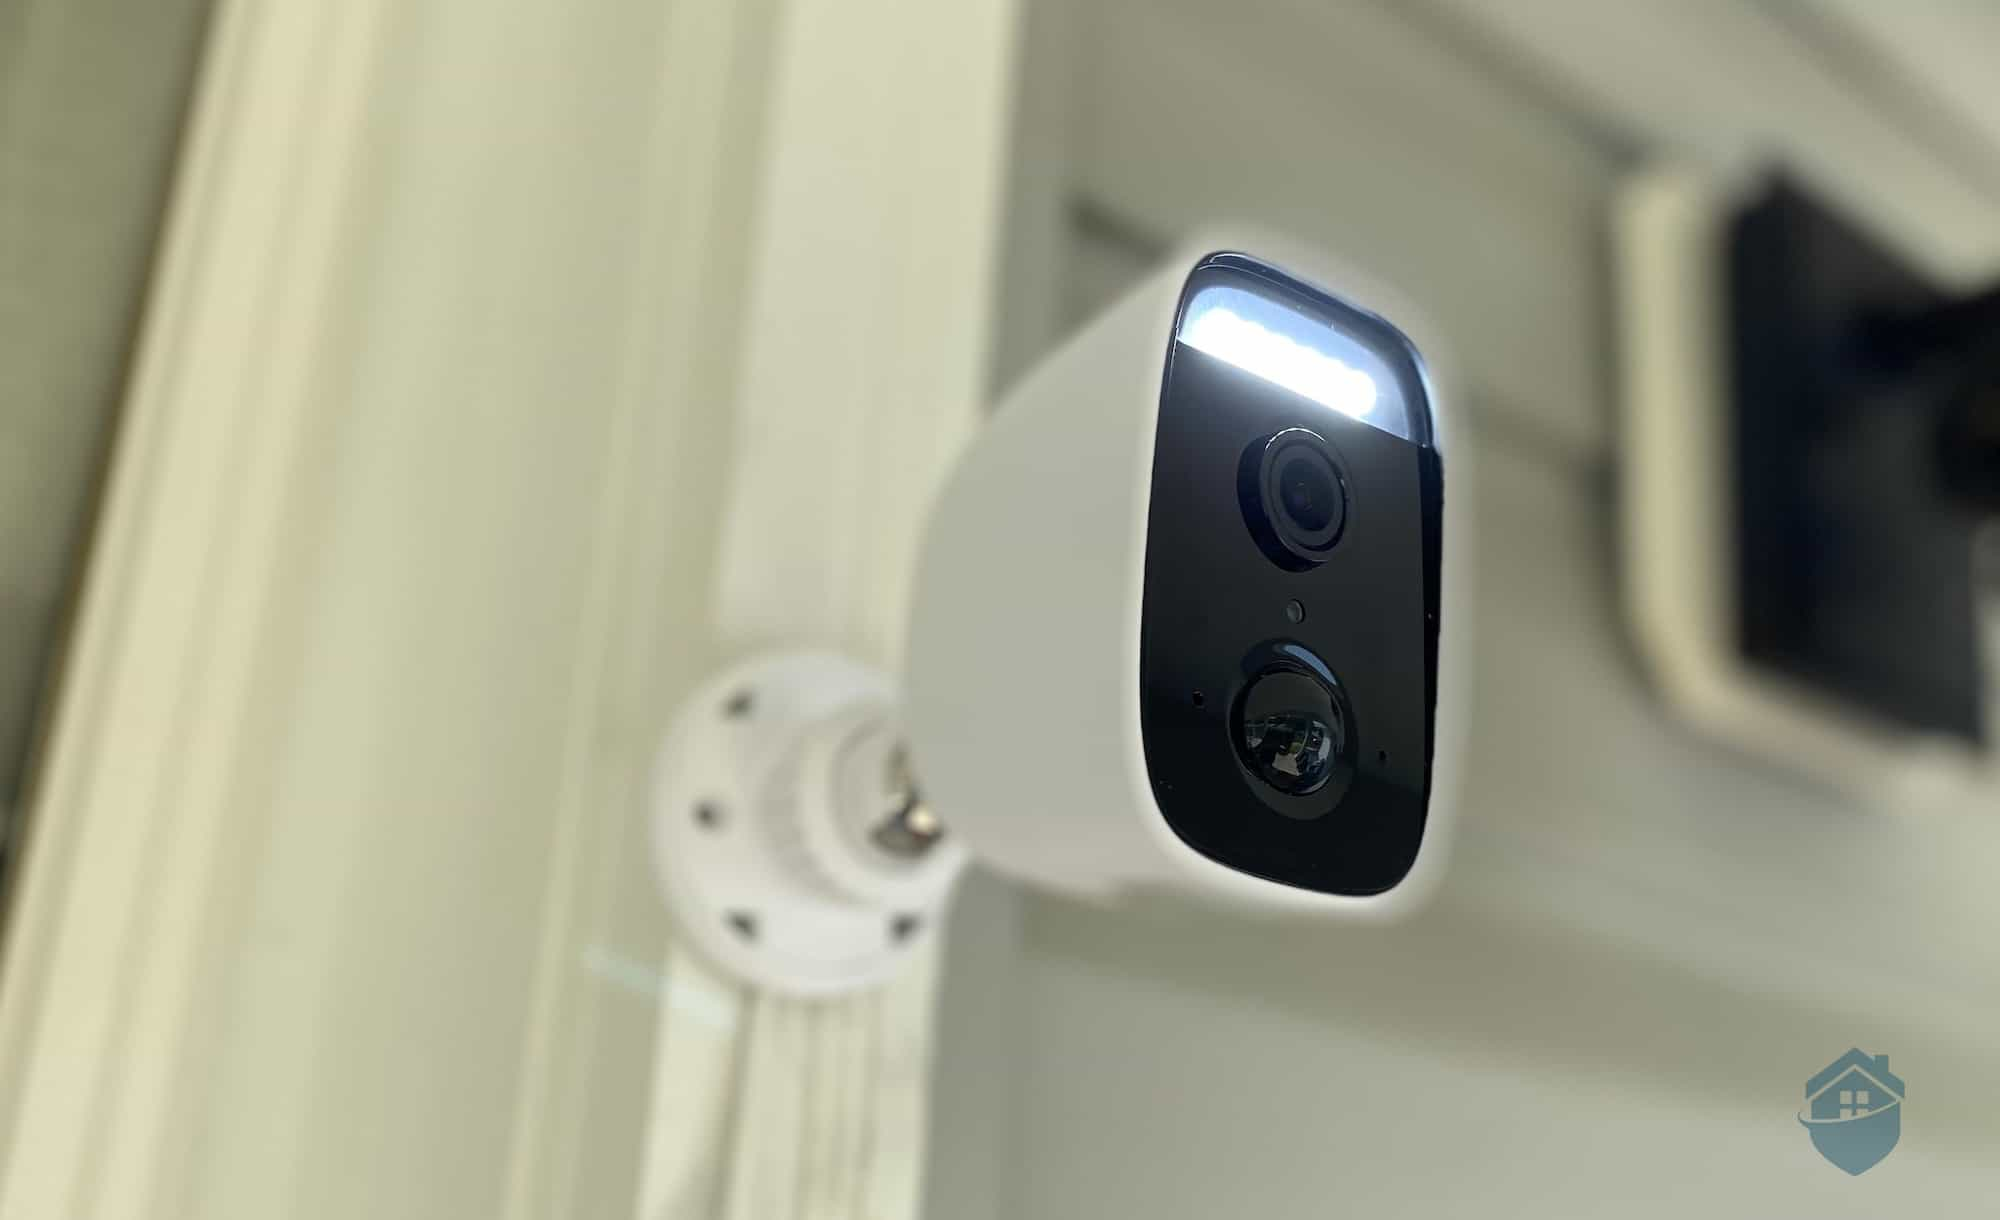 D-Link Camera Installed on Door Frame